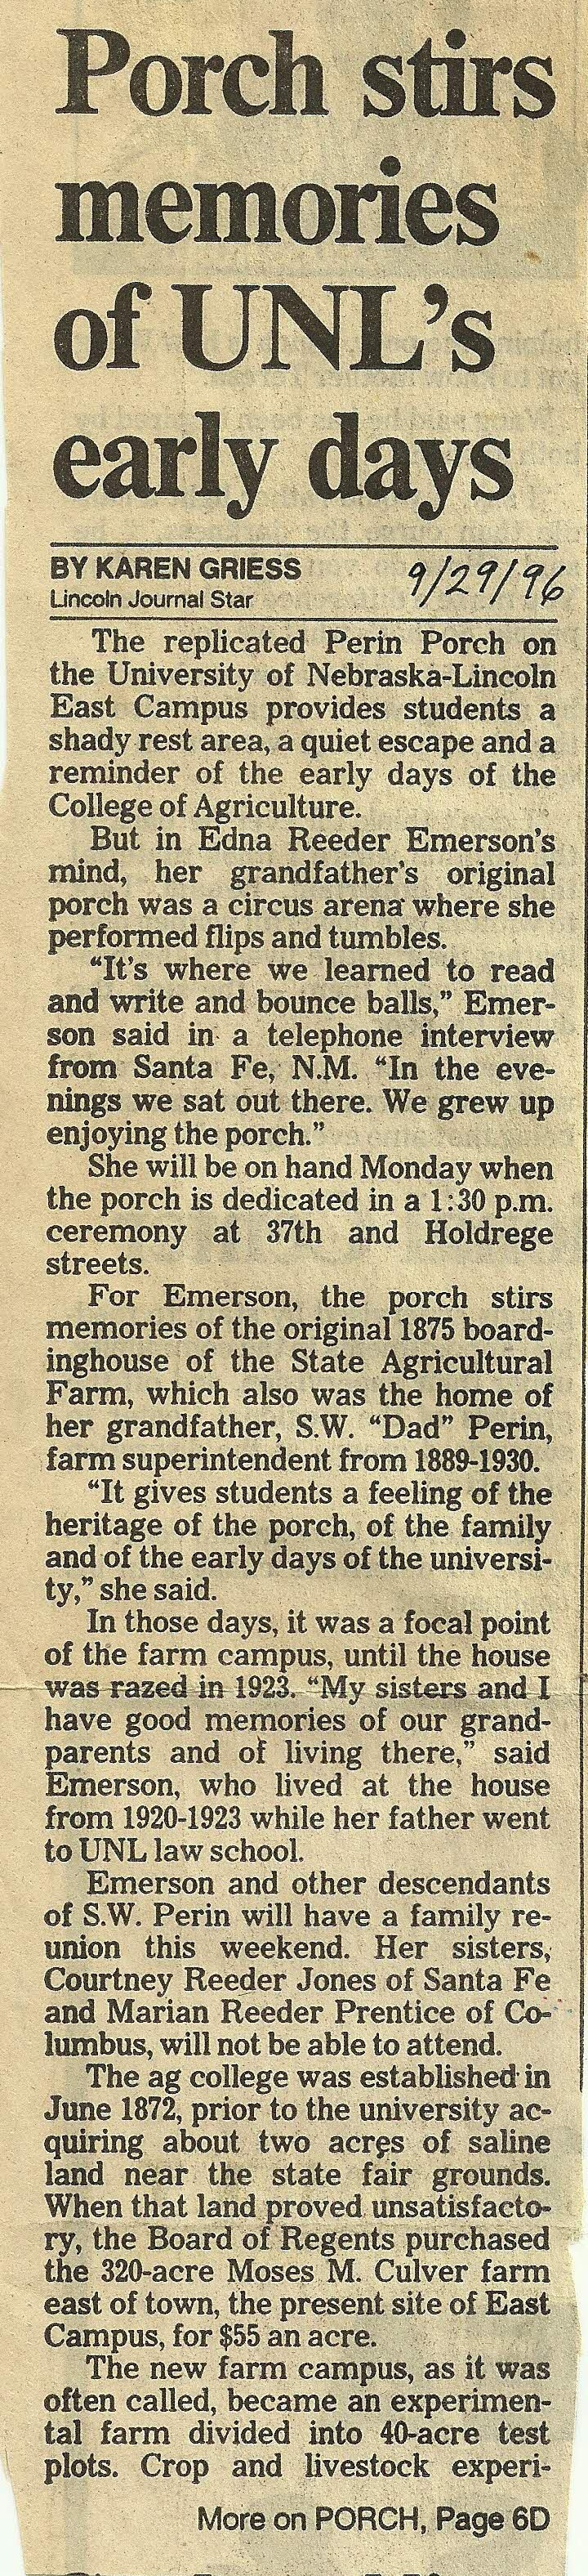 """Article, """"Porch stirs memories of UNL's early days"""""""